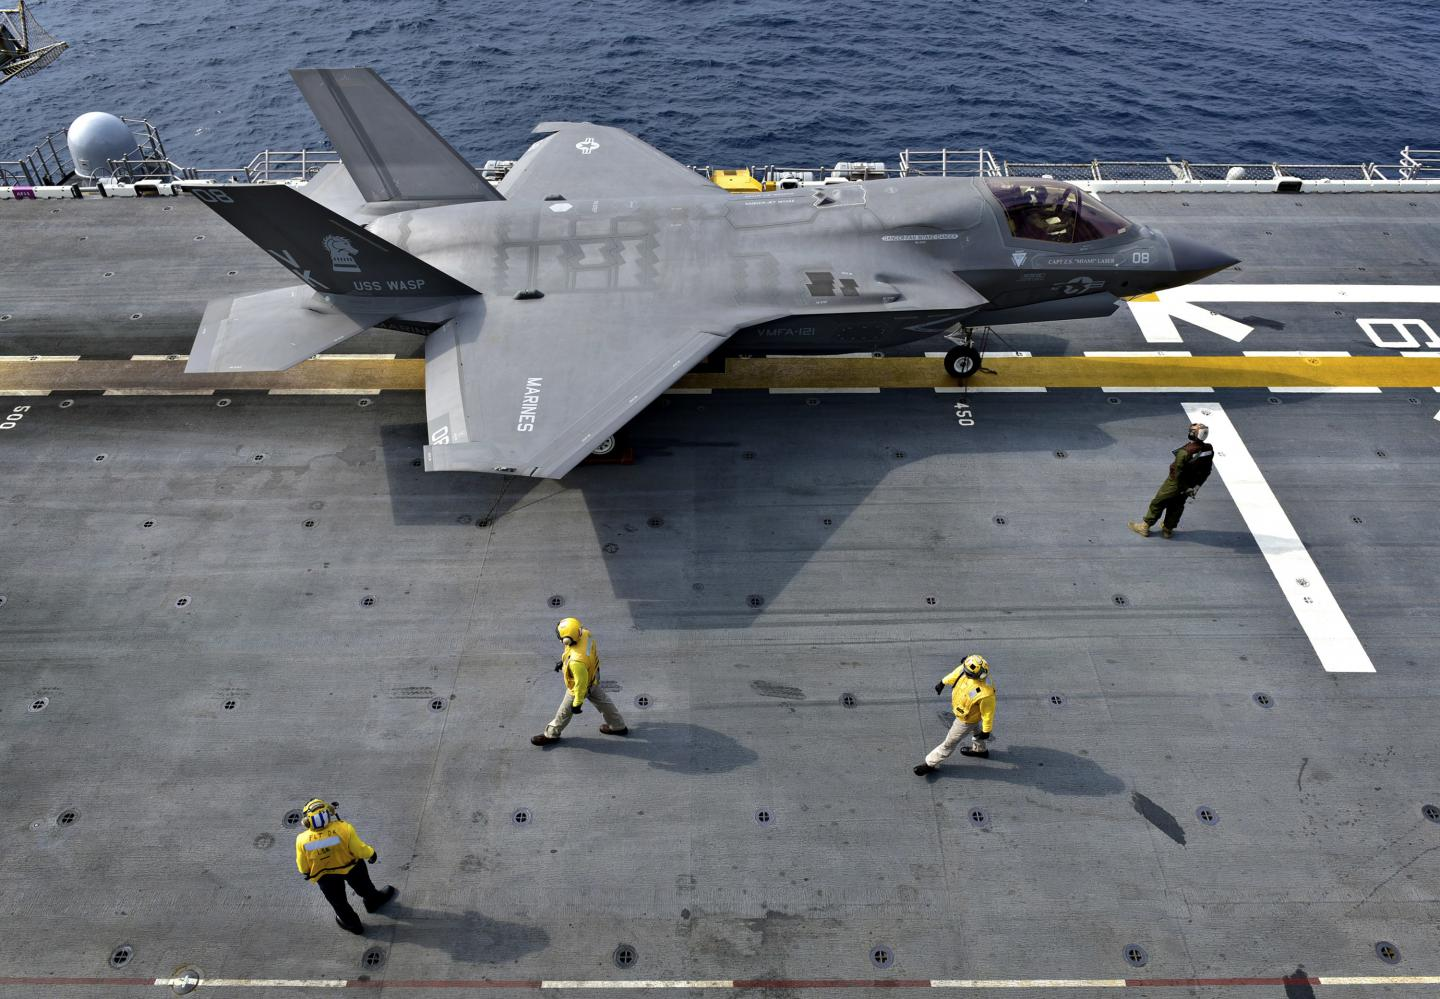 F-35 in Trouble? Dispute with Lockheed Martin Means No More American F-35 Deliveries